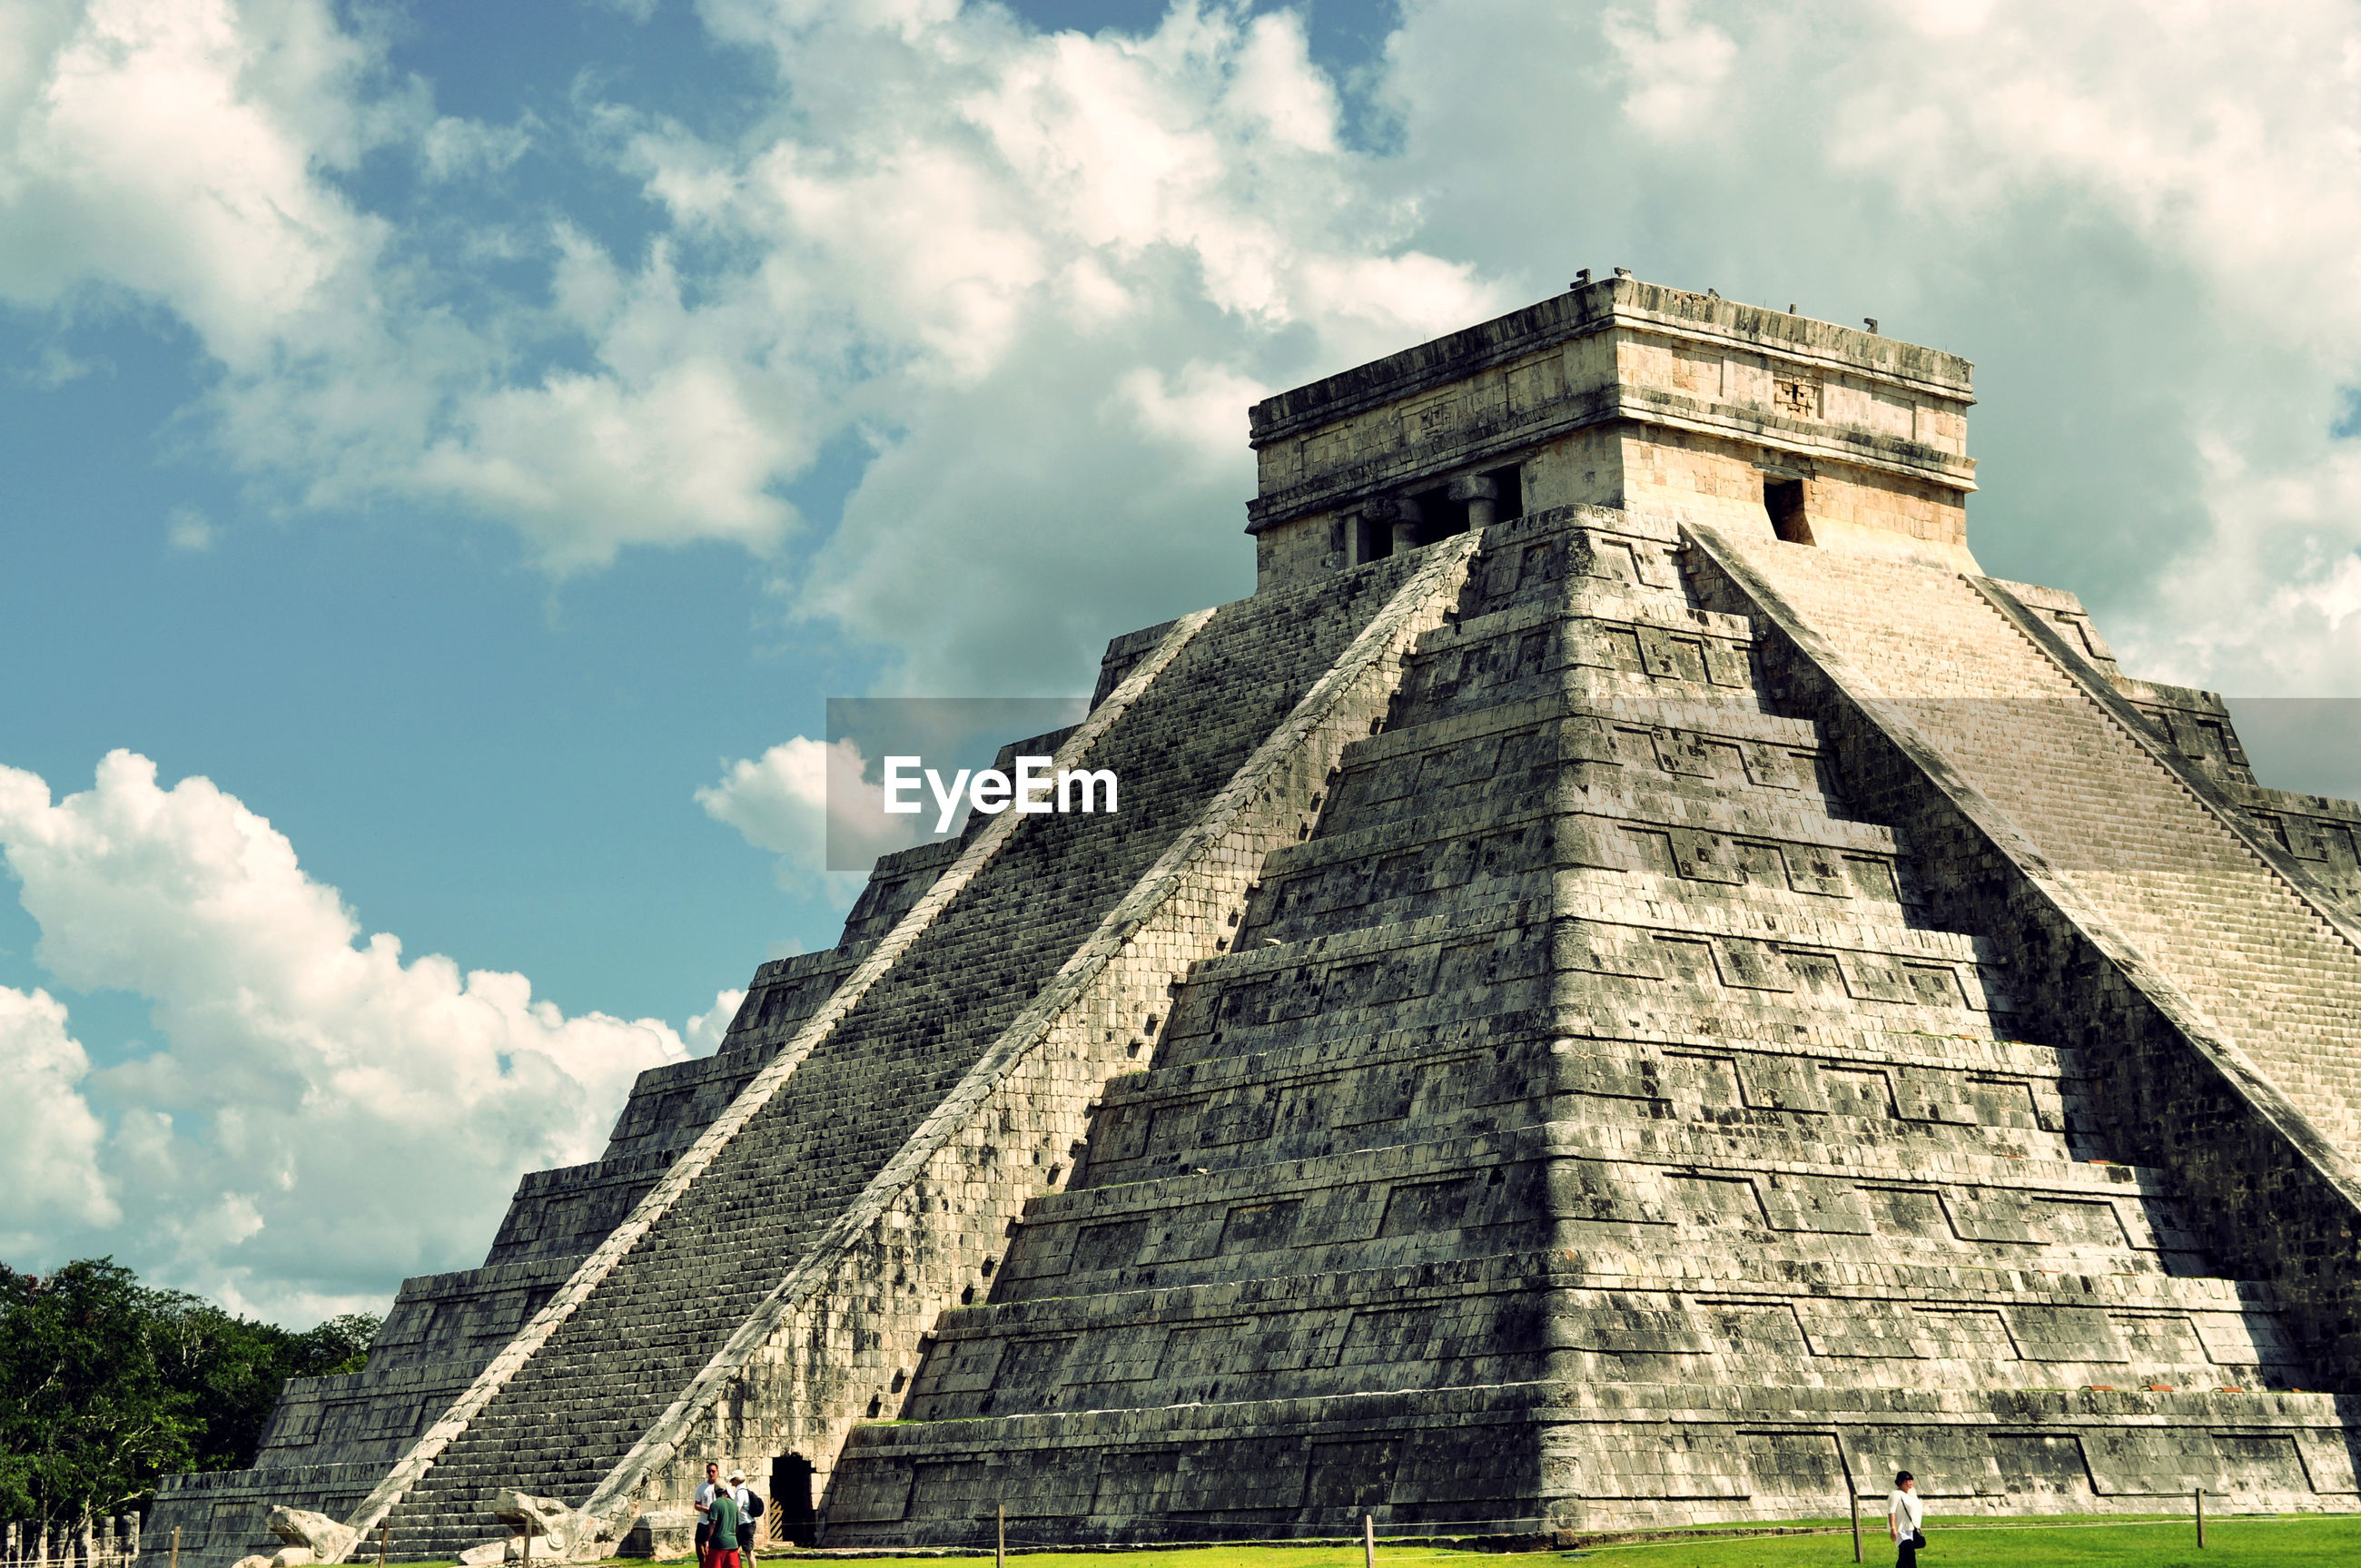 Low angle view of chichen itza against cloudy sky